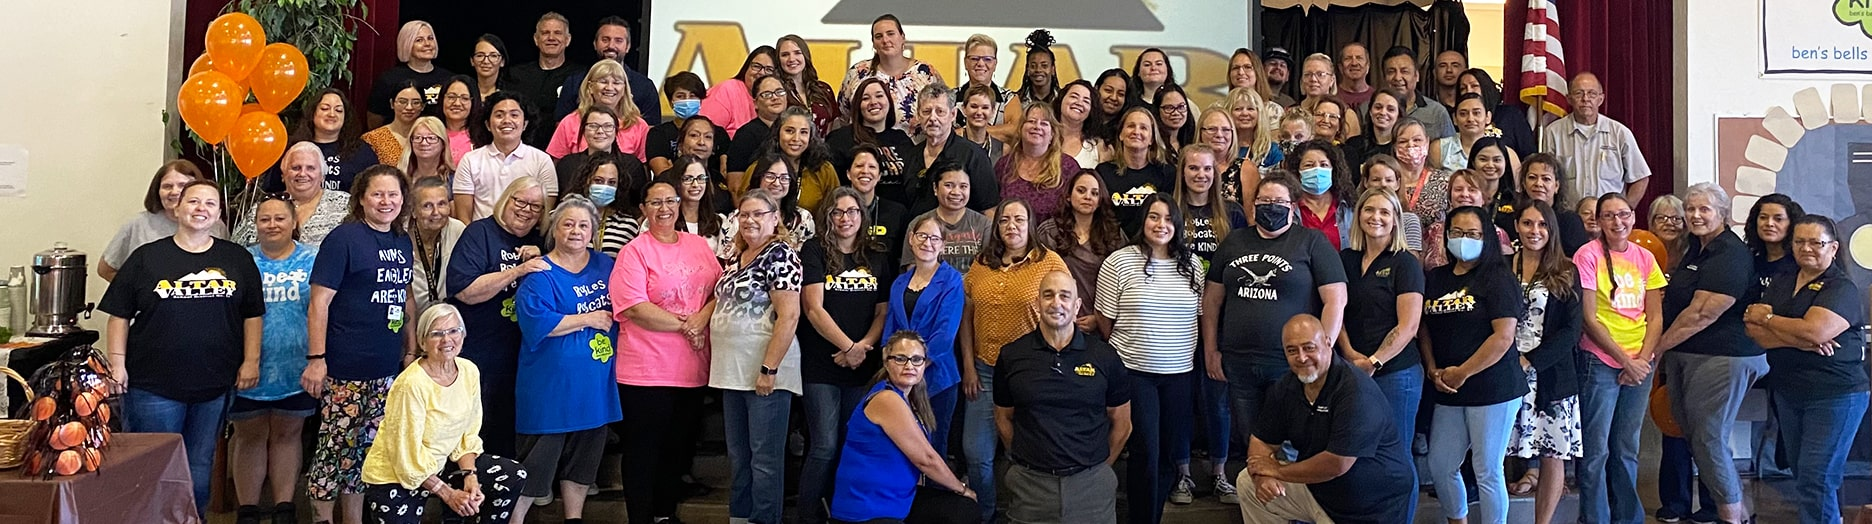 Altar Valley School District teachers and staff for the 2021-2022 school year